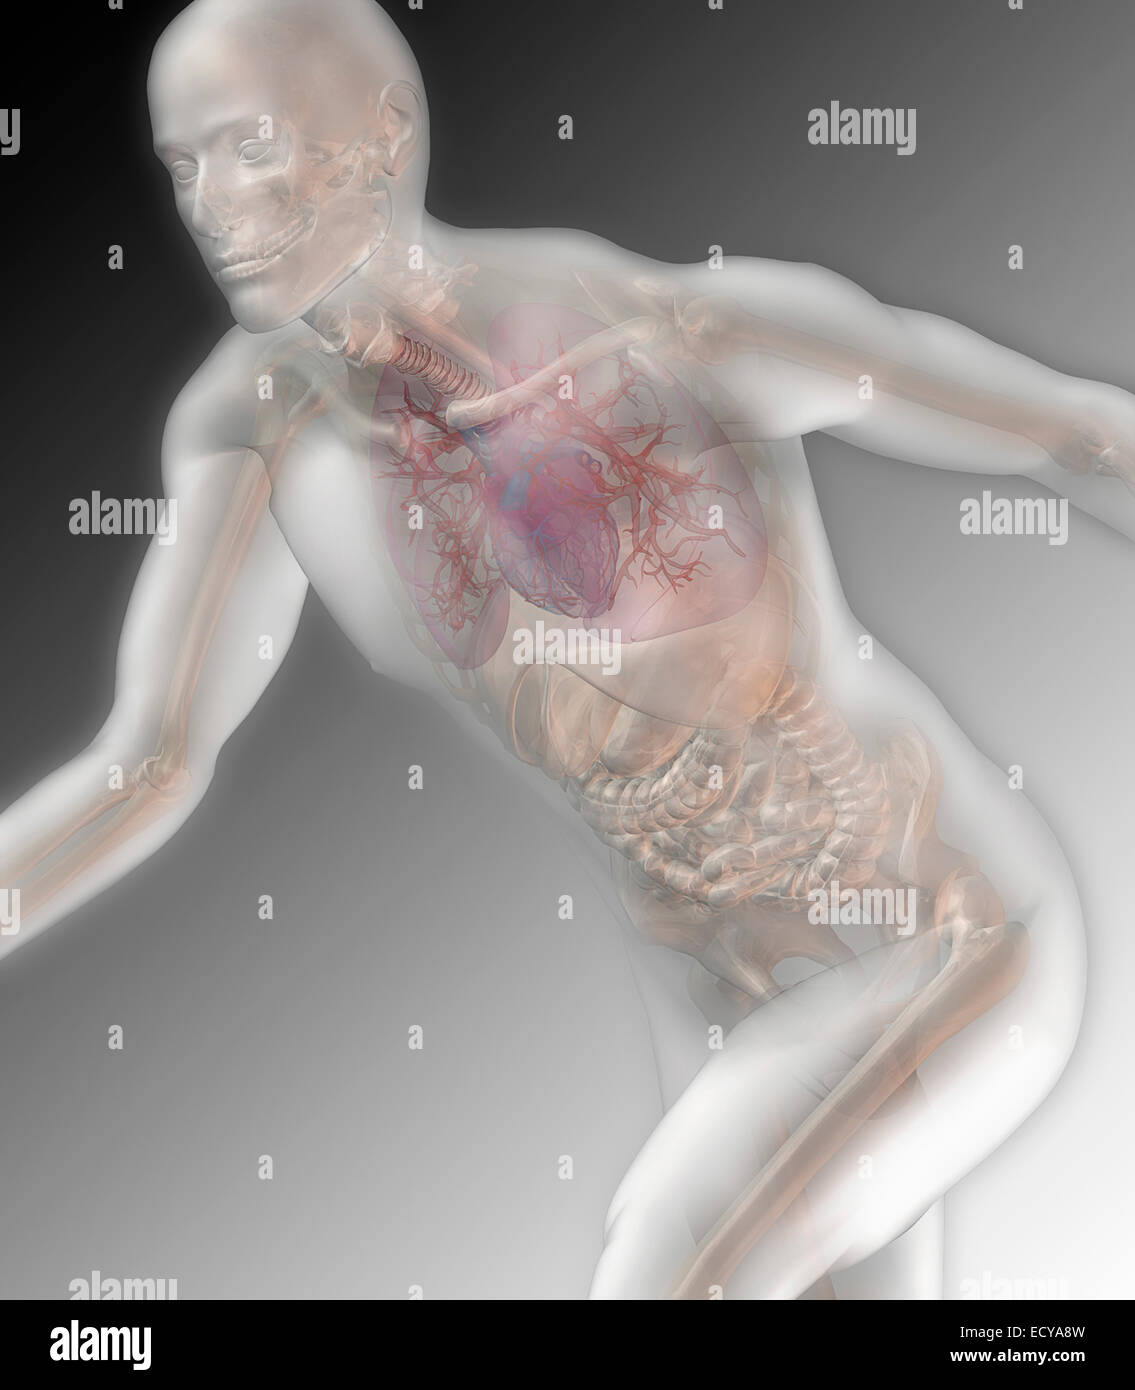 Computer generated illustration of a running male figure. - Stock Image